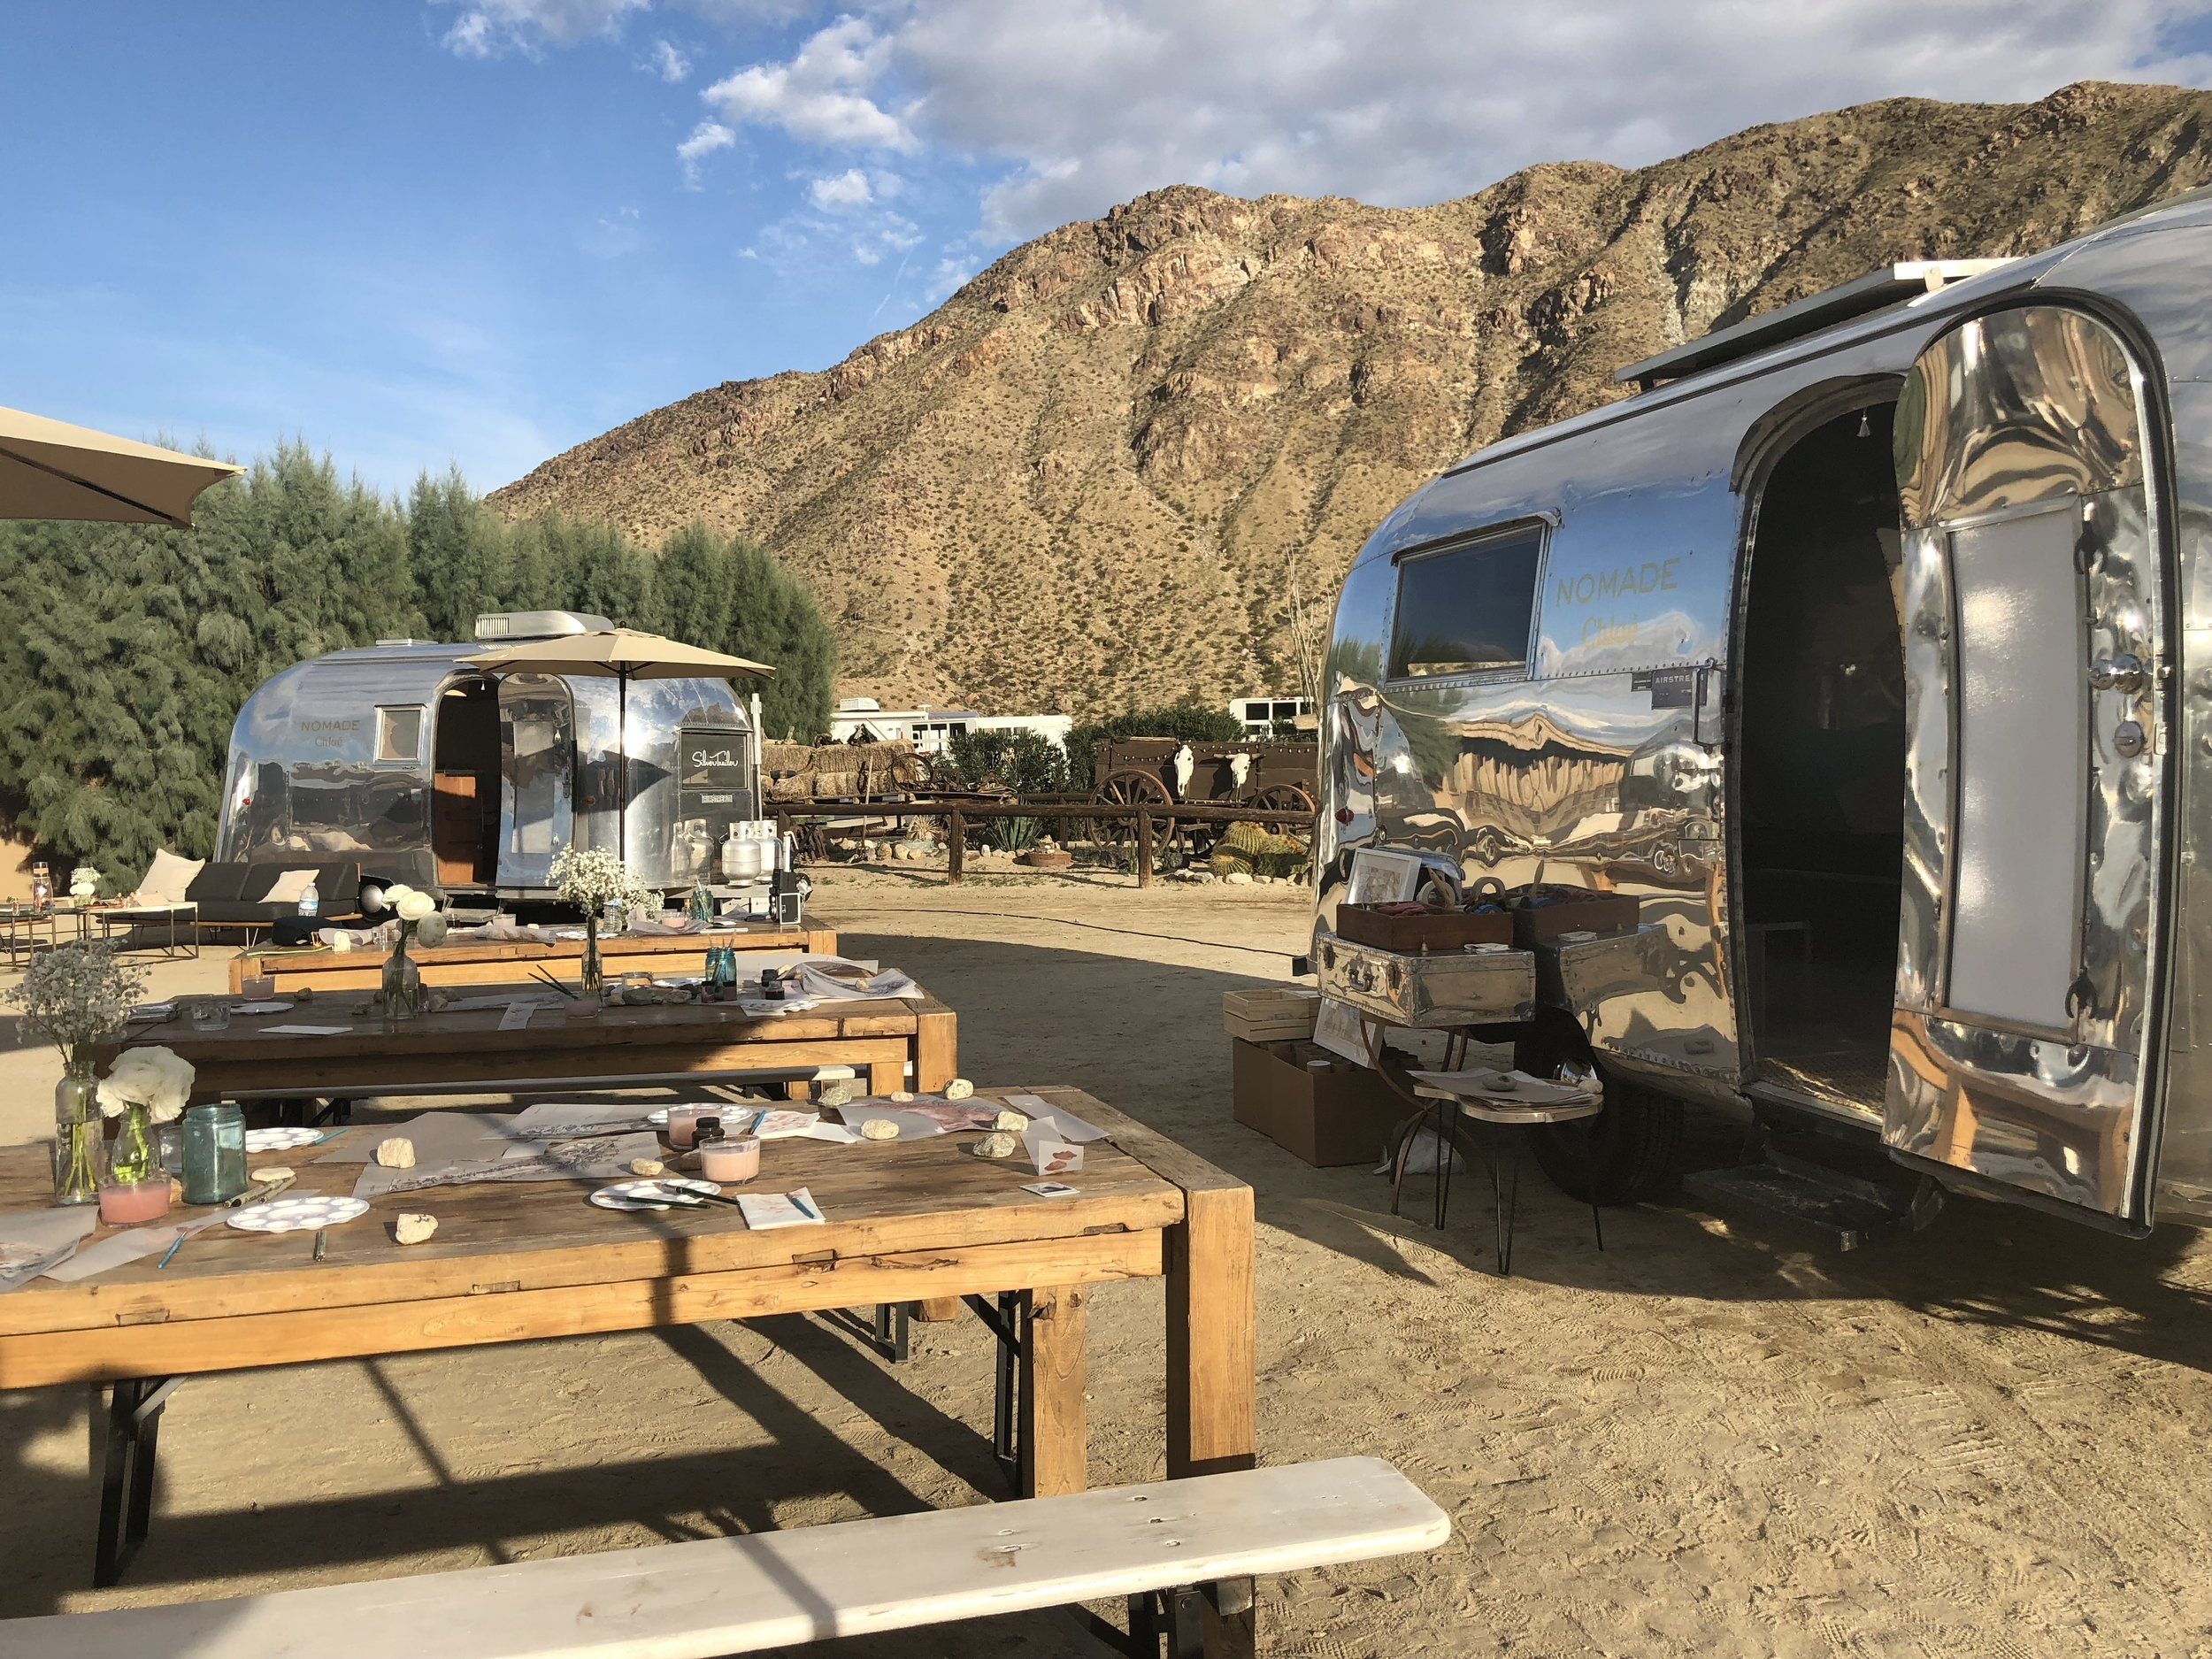 Silver Trailer's Vintage Airstream Caravel and Airstream Globetrotter